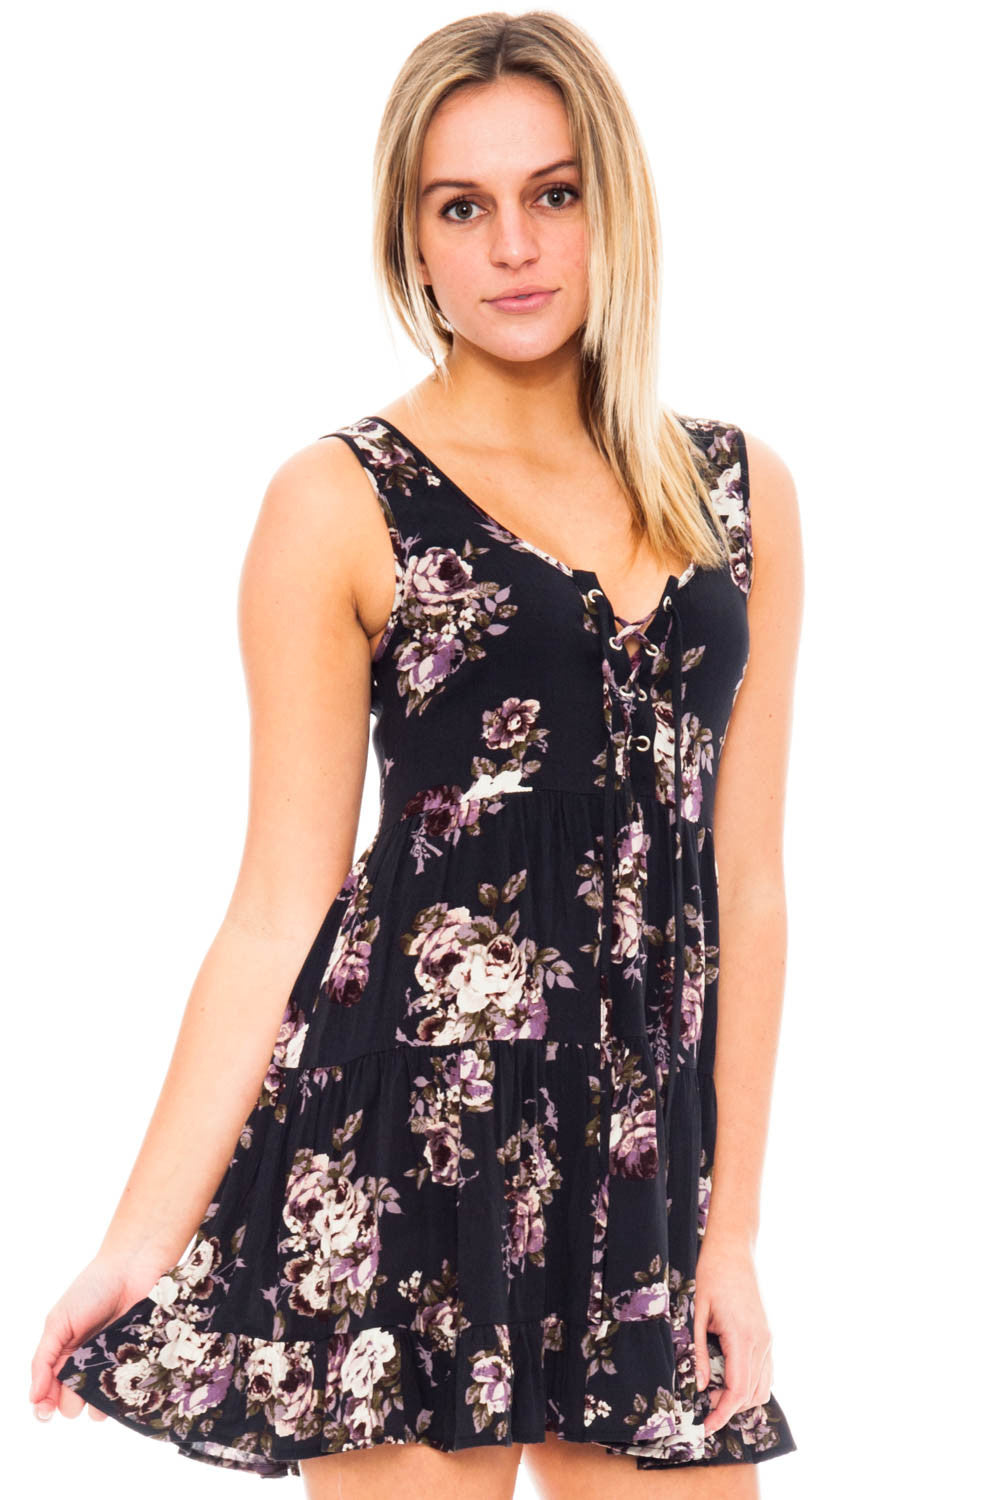 Dress - Floral with neckline lace-up detail